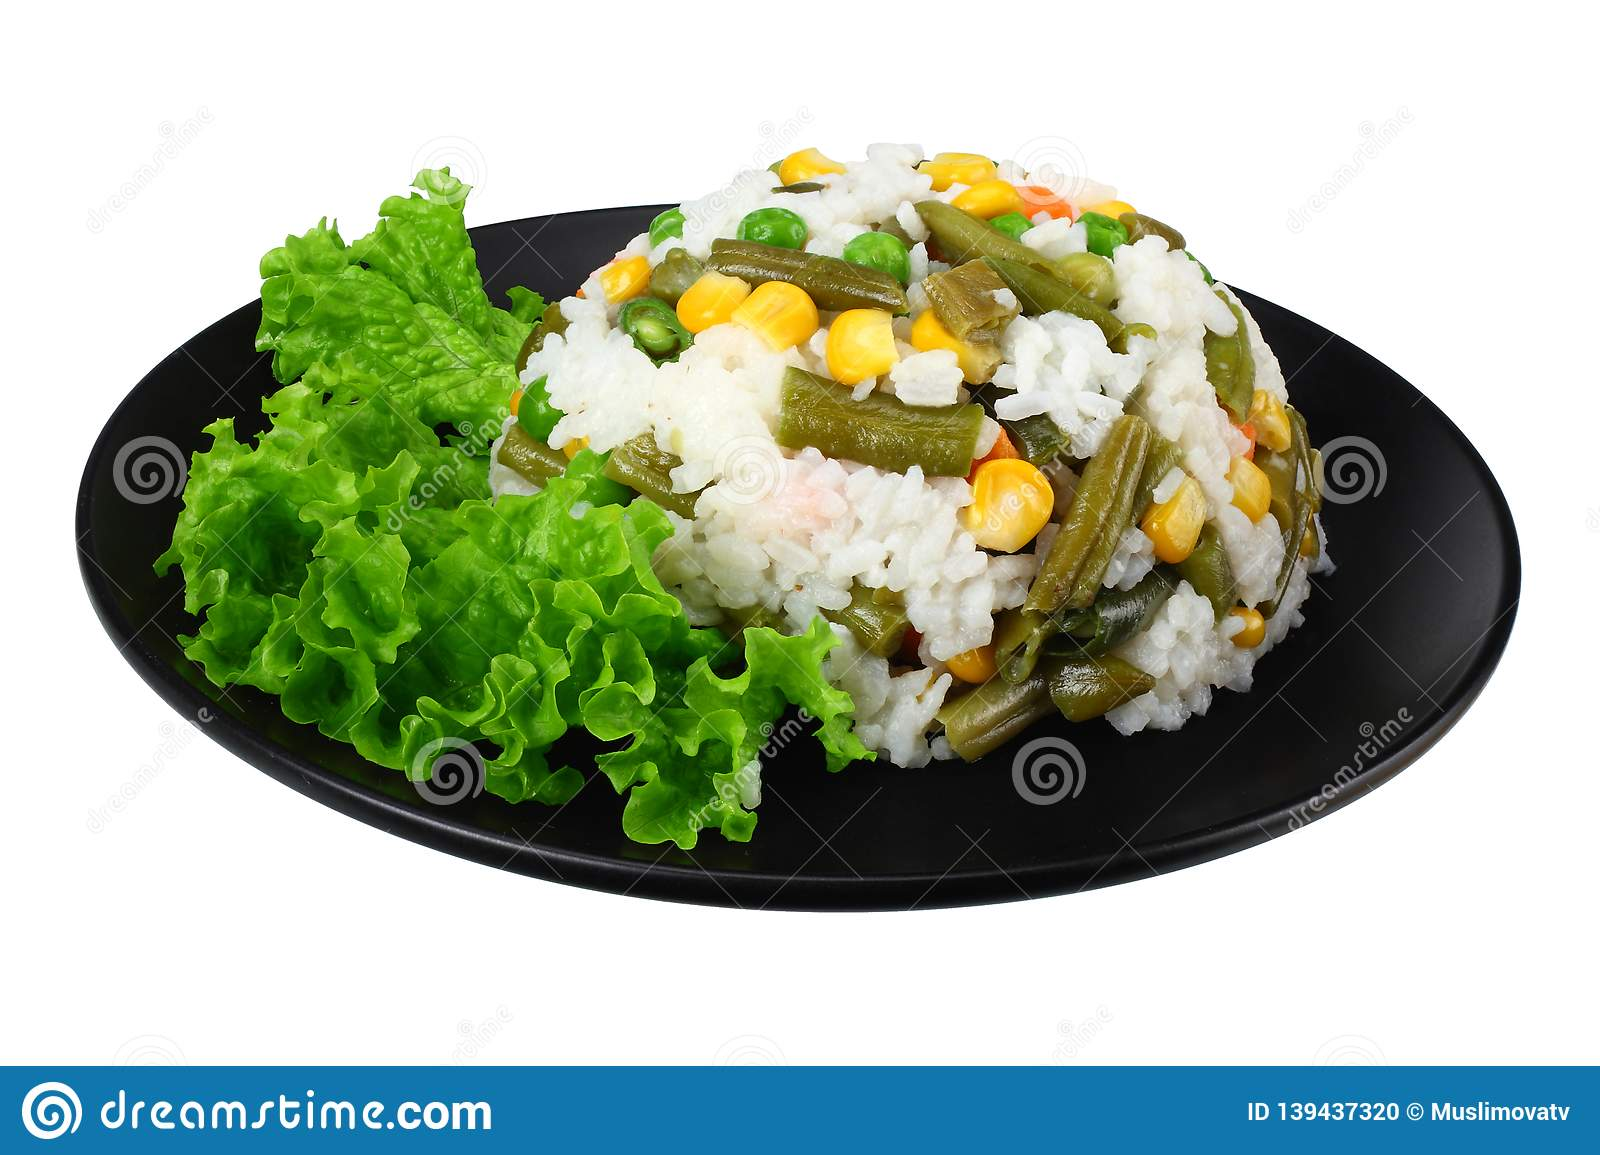 black plate with white rice, green peas, canned corn kernels, cut green beans isolated on white background